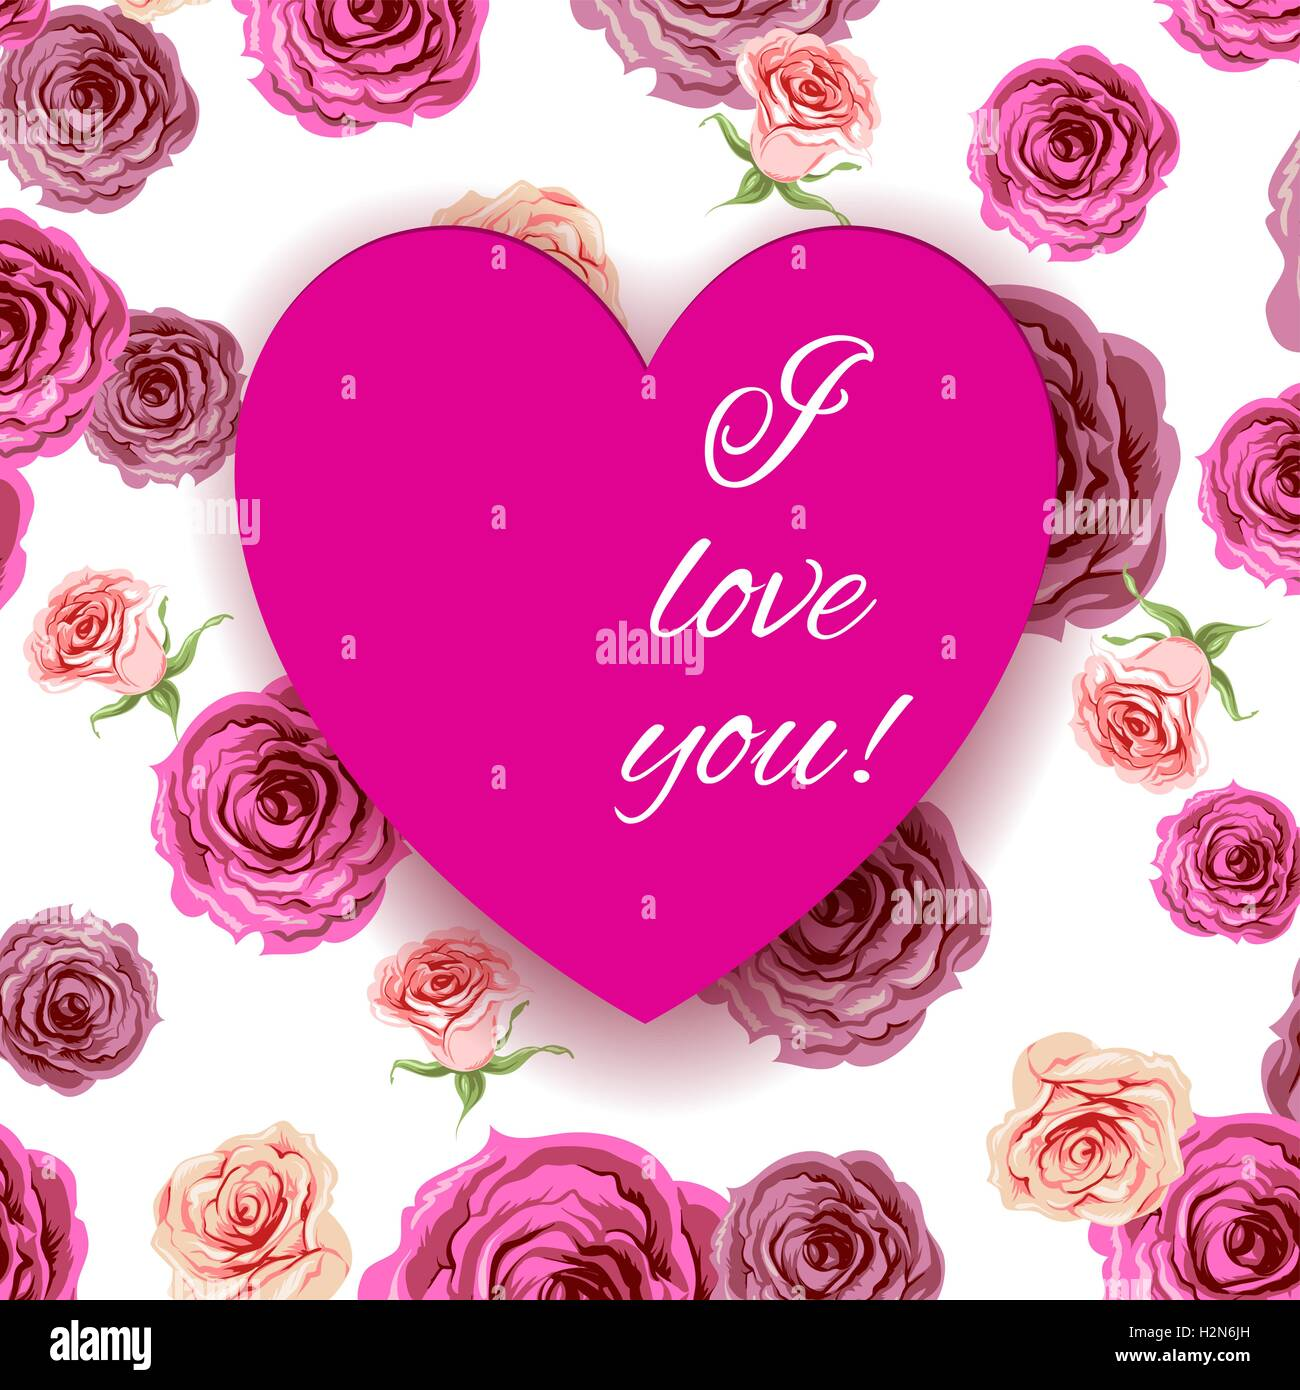 I love you background - Stock Vector